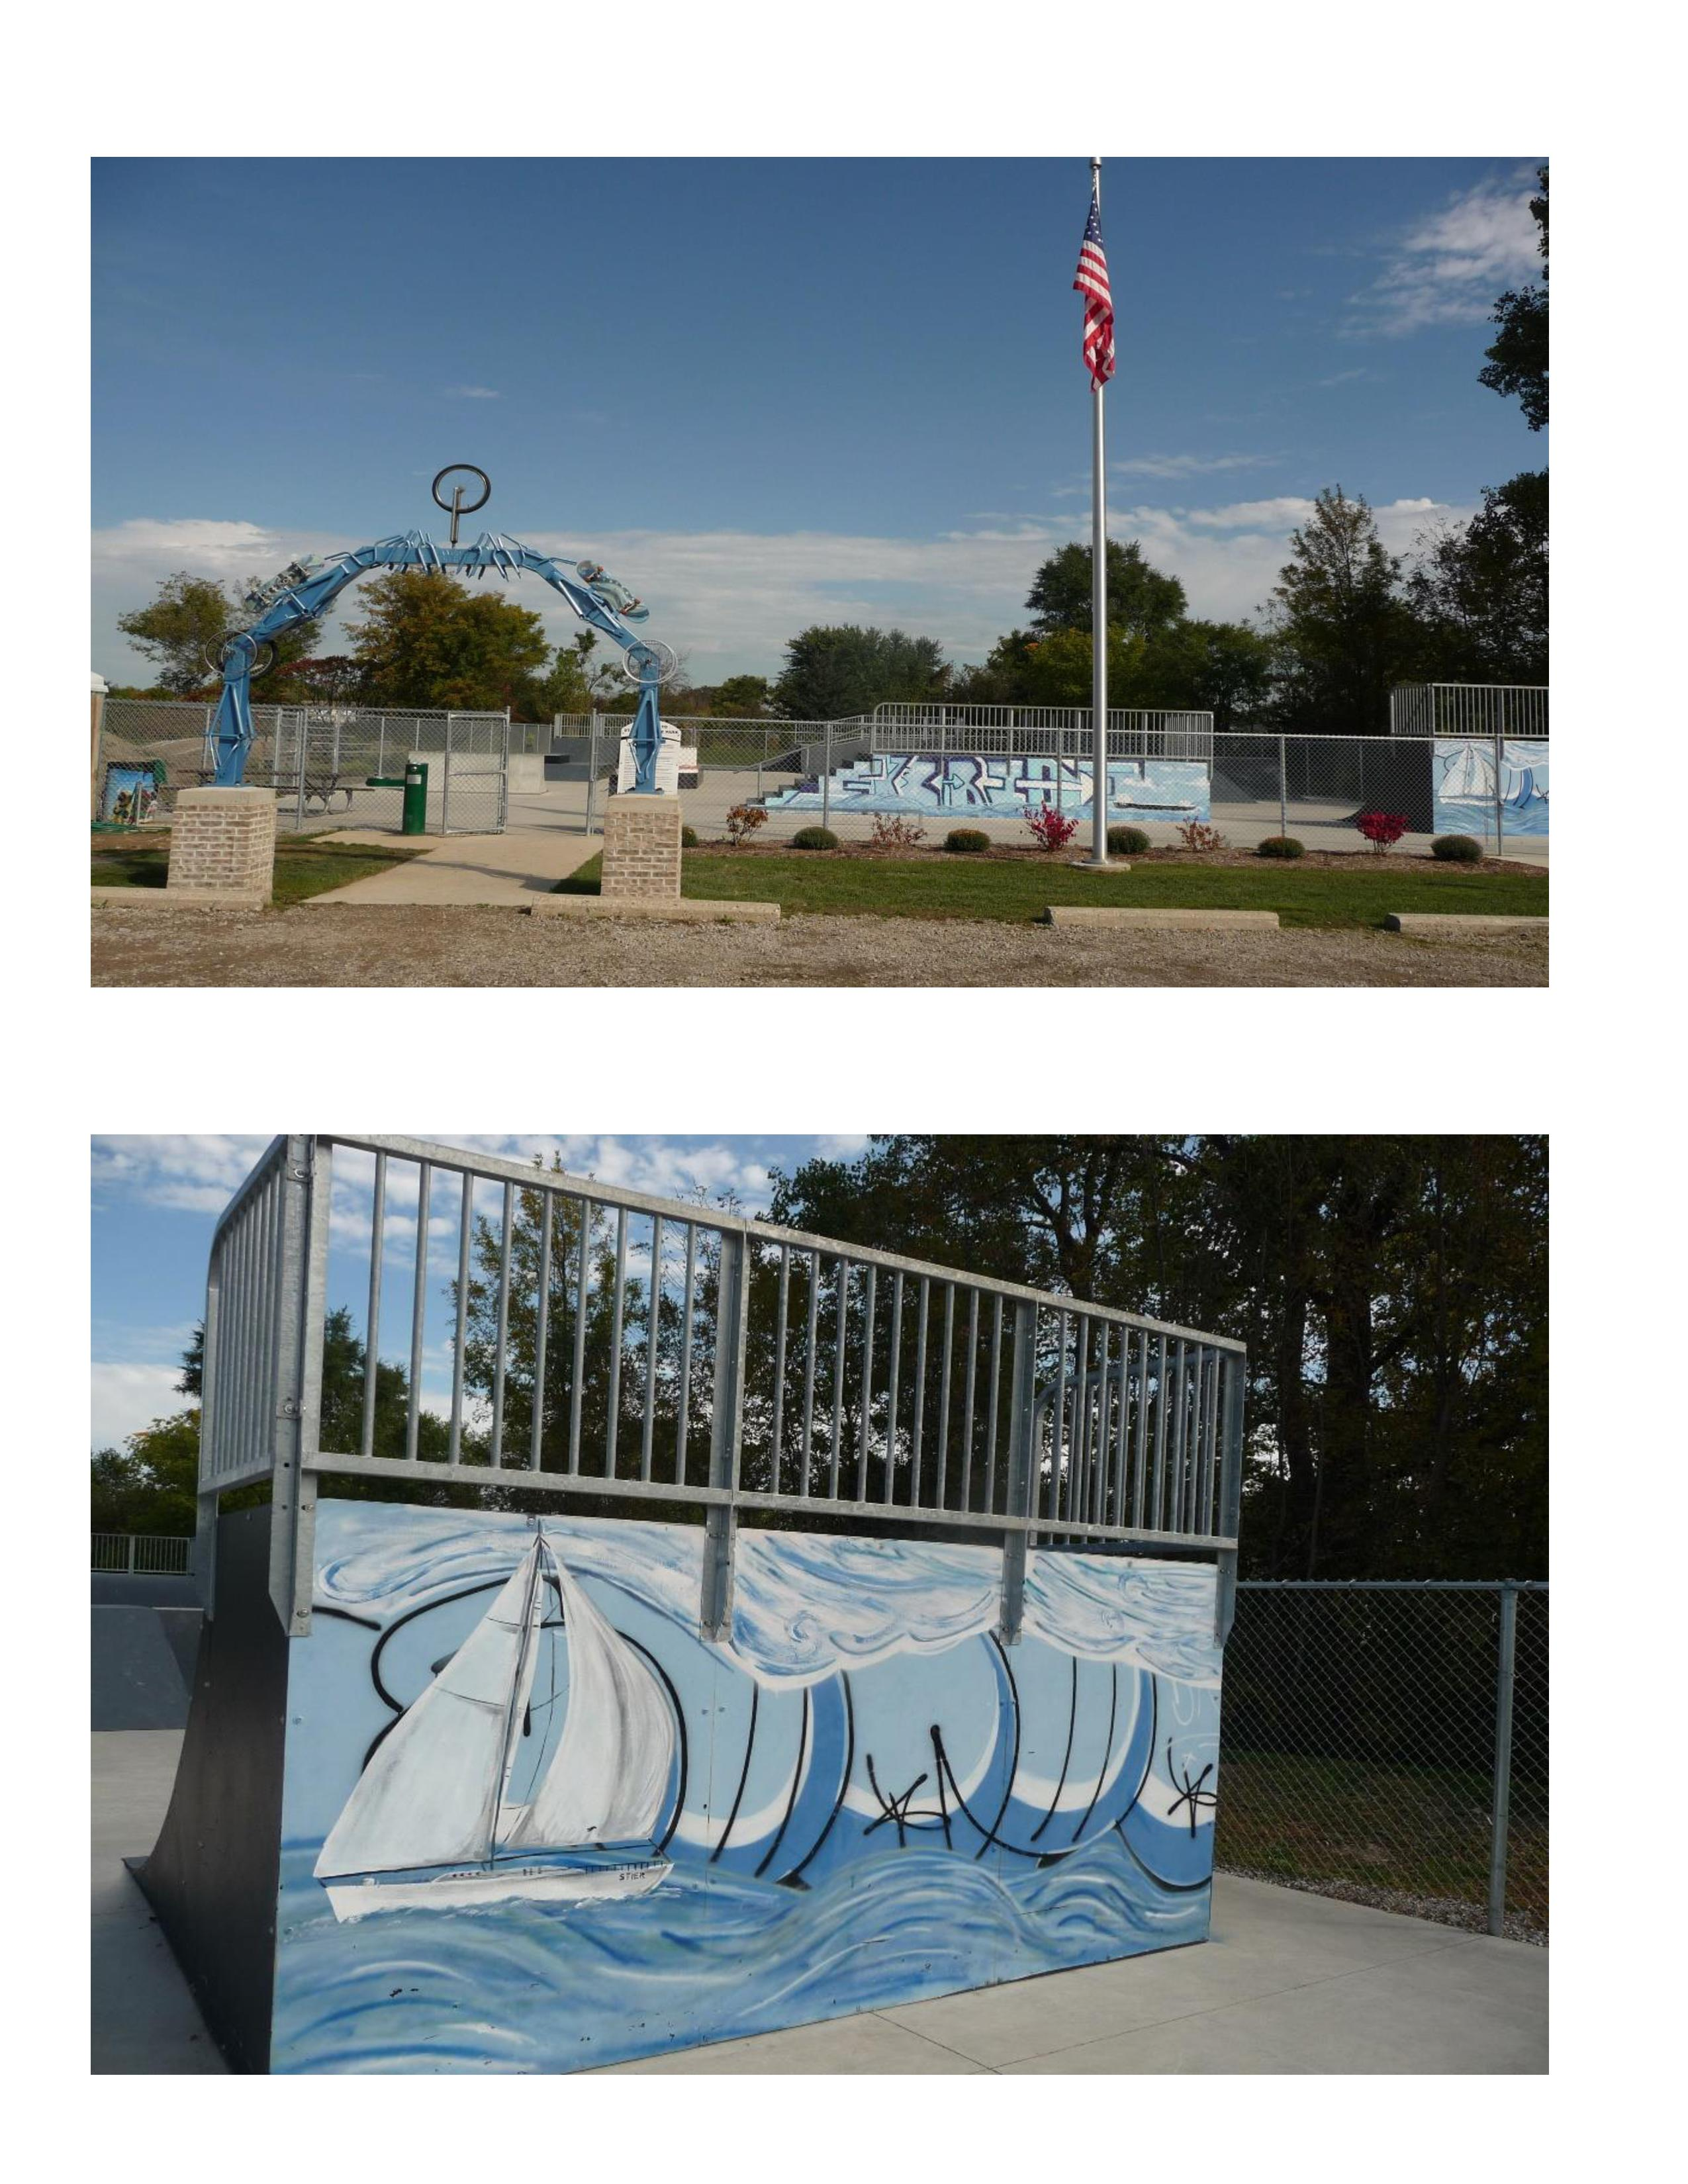 Skate Arch and Artwork (1)